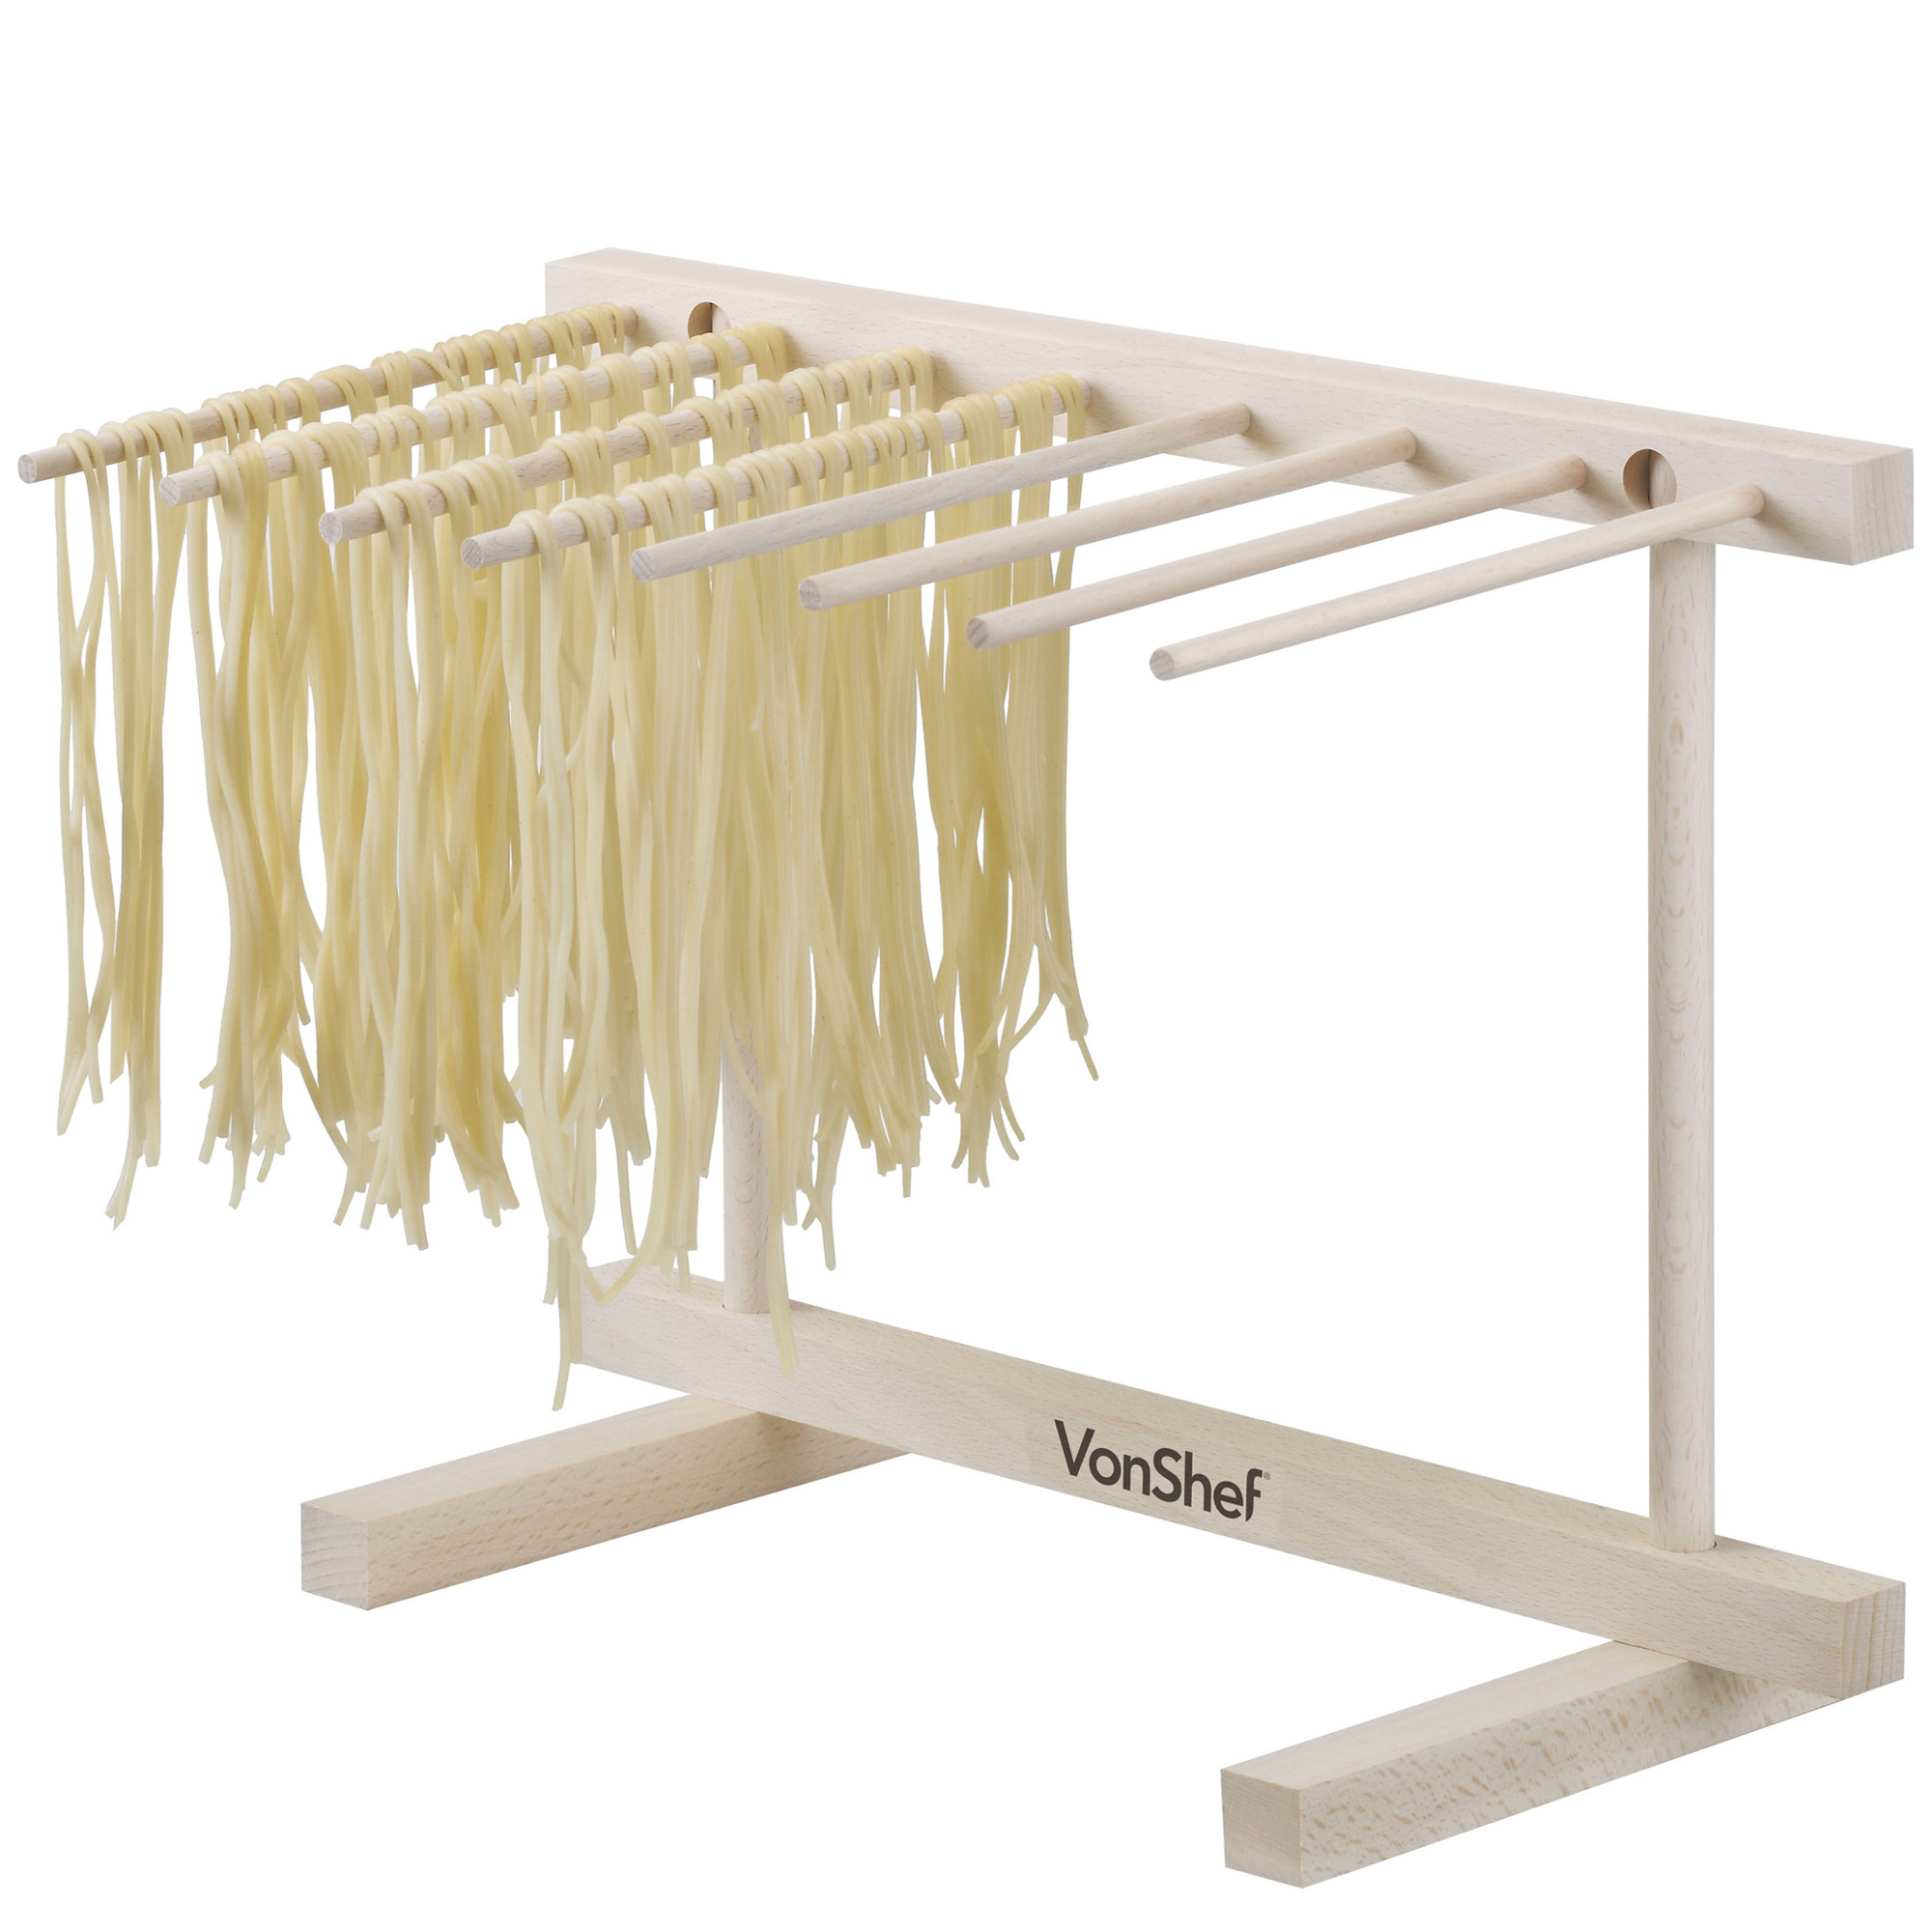 VonShef Collapsible Pasta & Spaghetti Drying Rack Stand